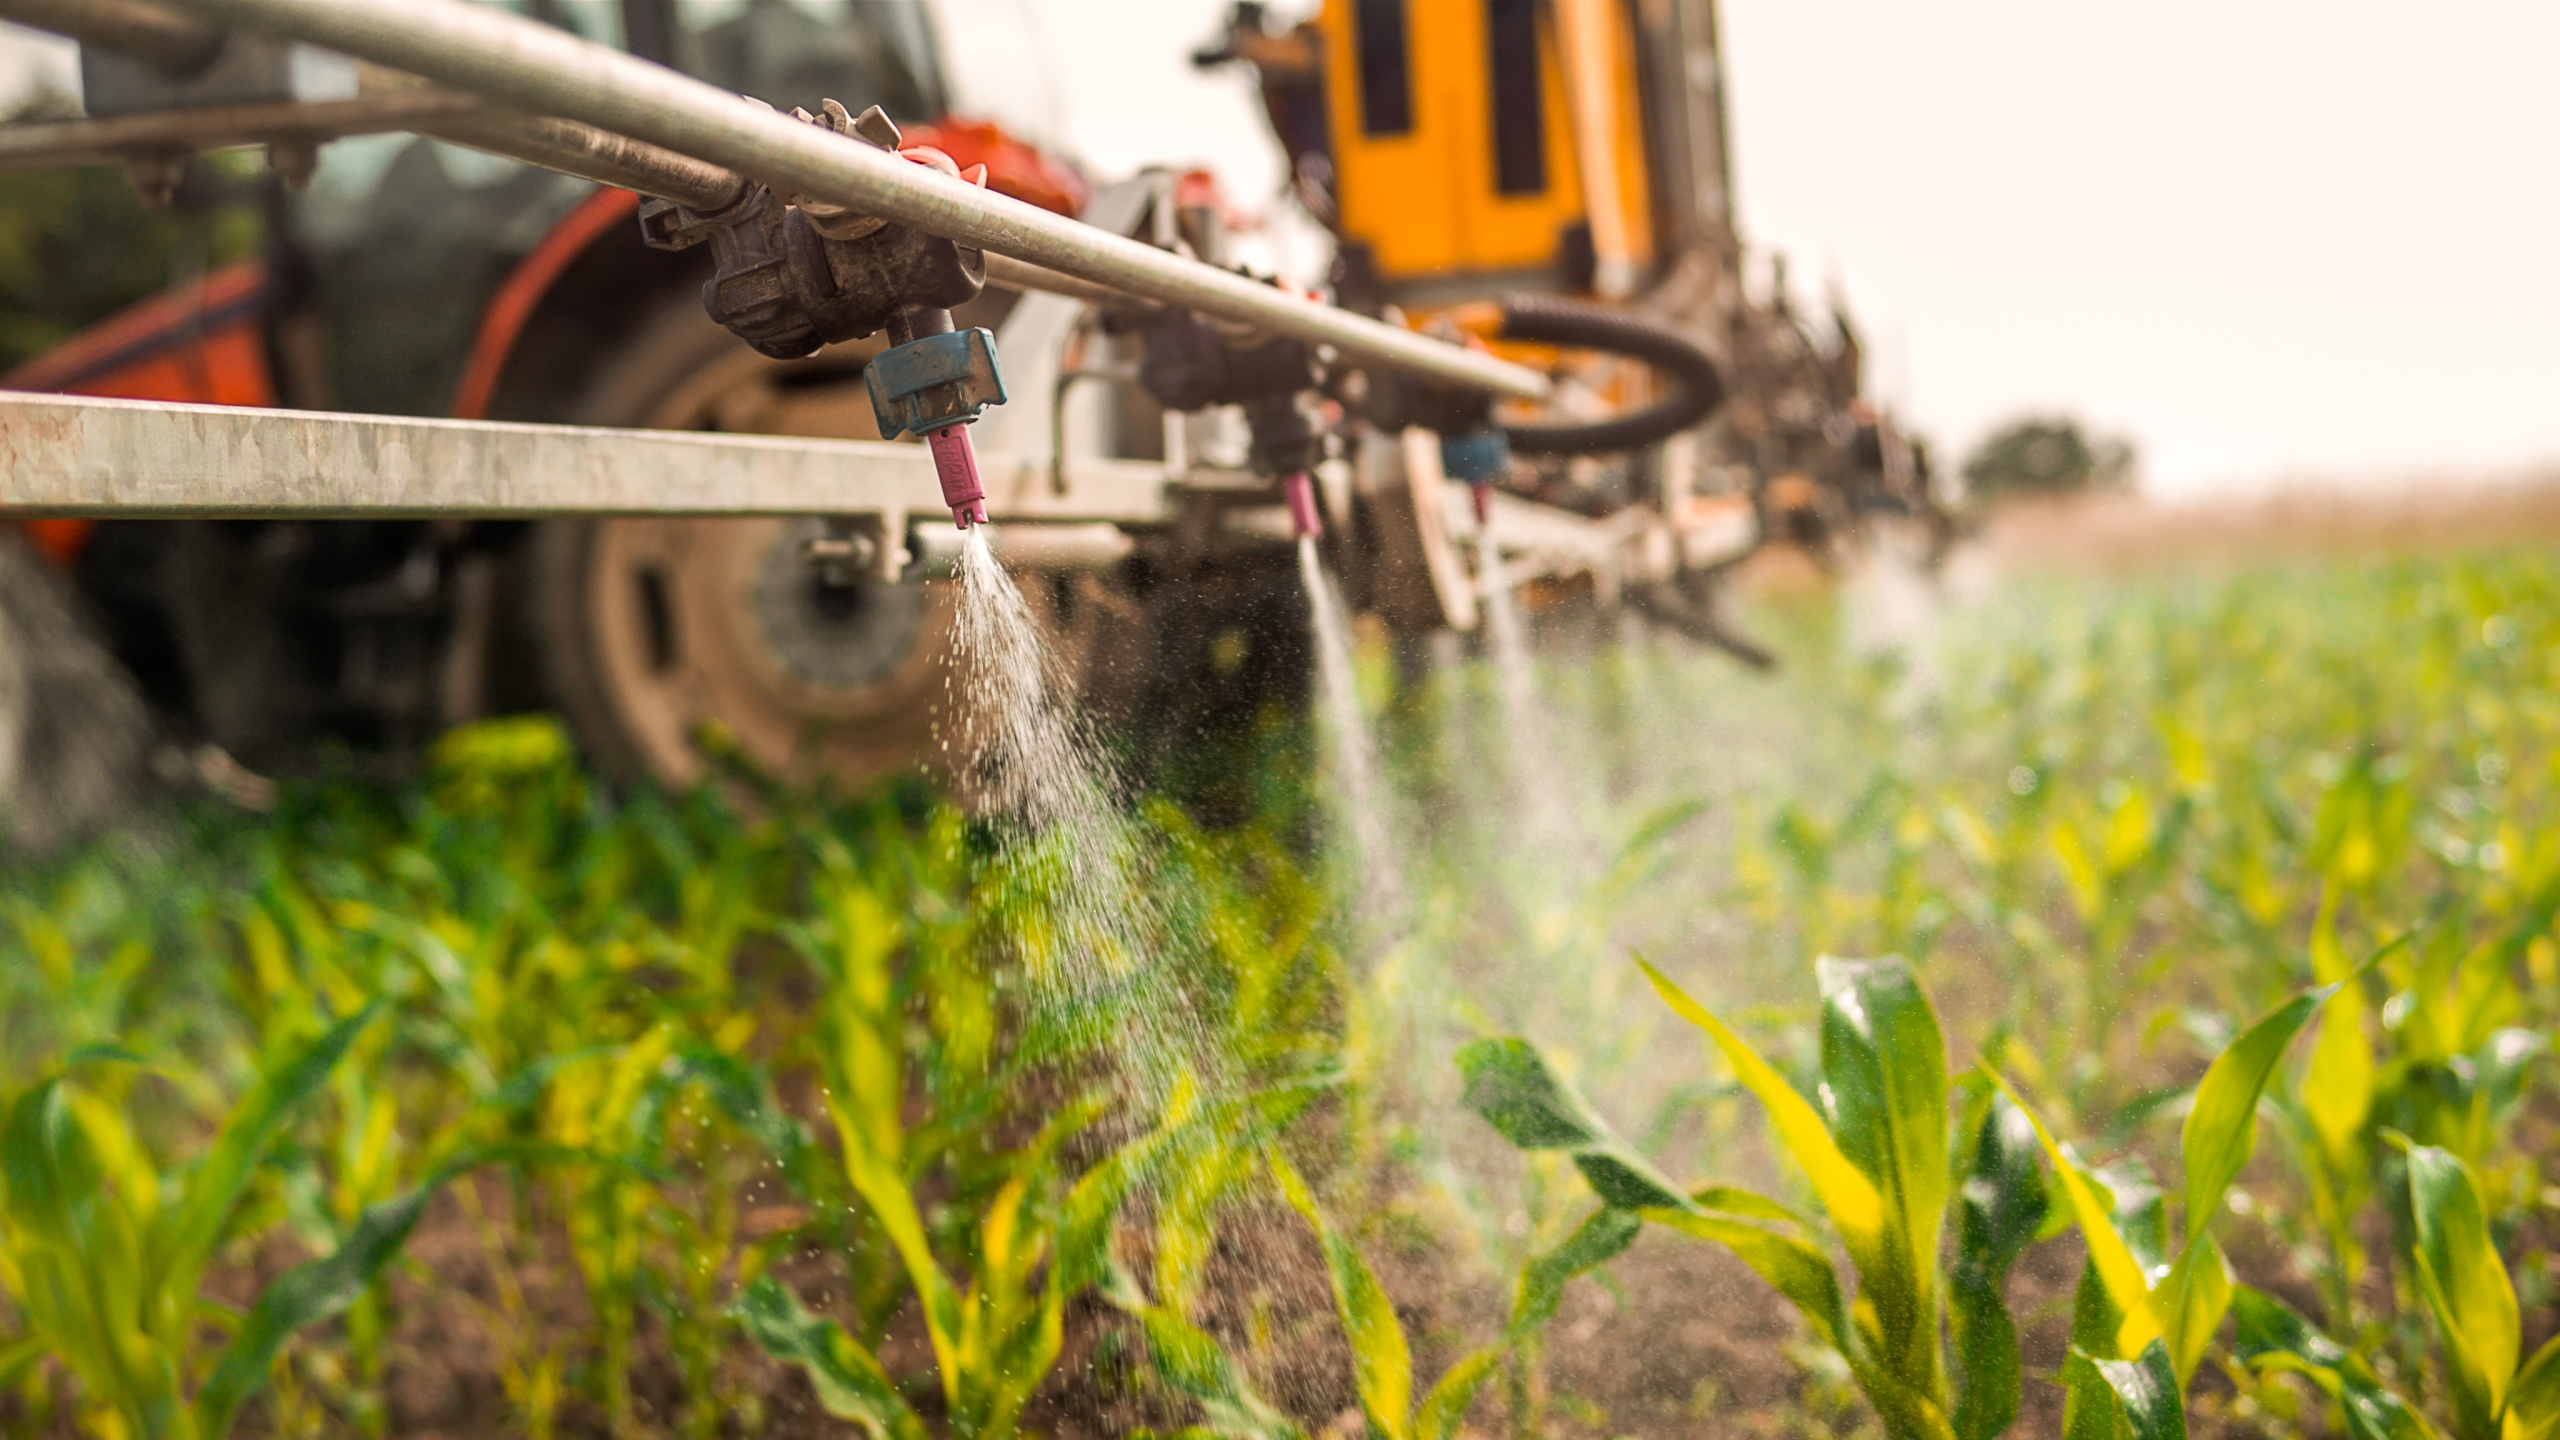 Crop sprayer spraying pesticides on crops in field. (Credit: simonkr / Getty Images)